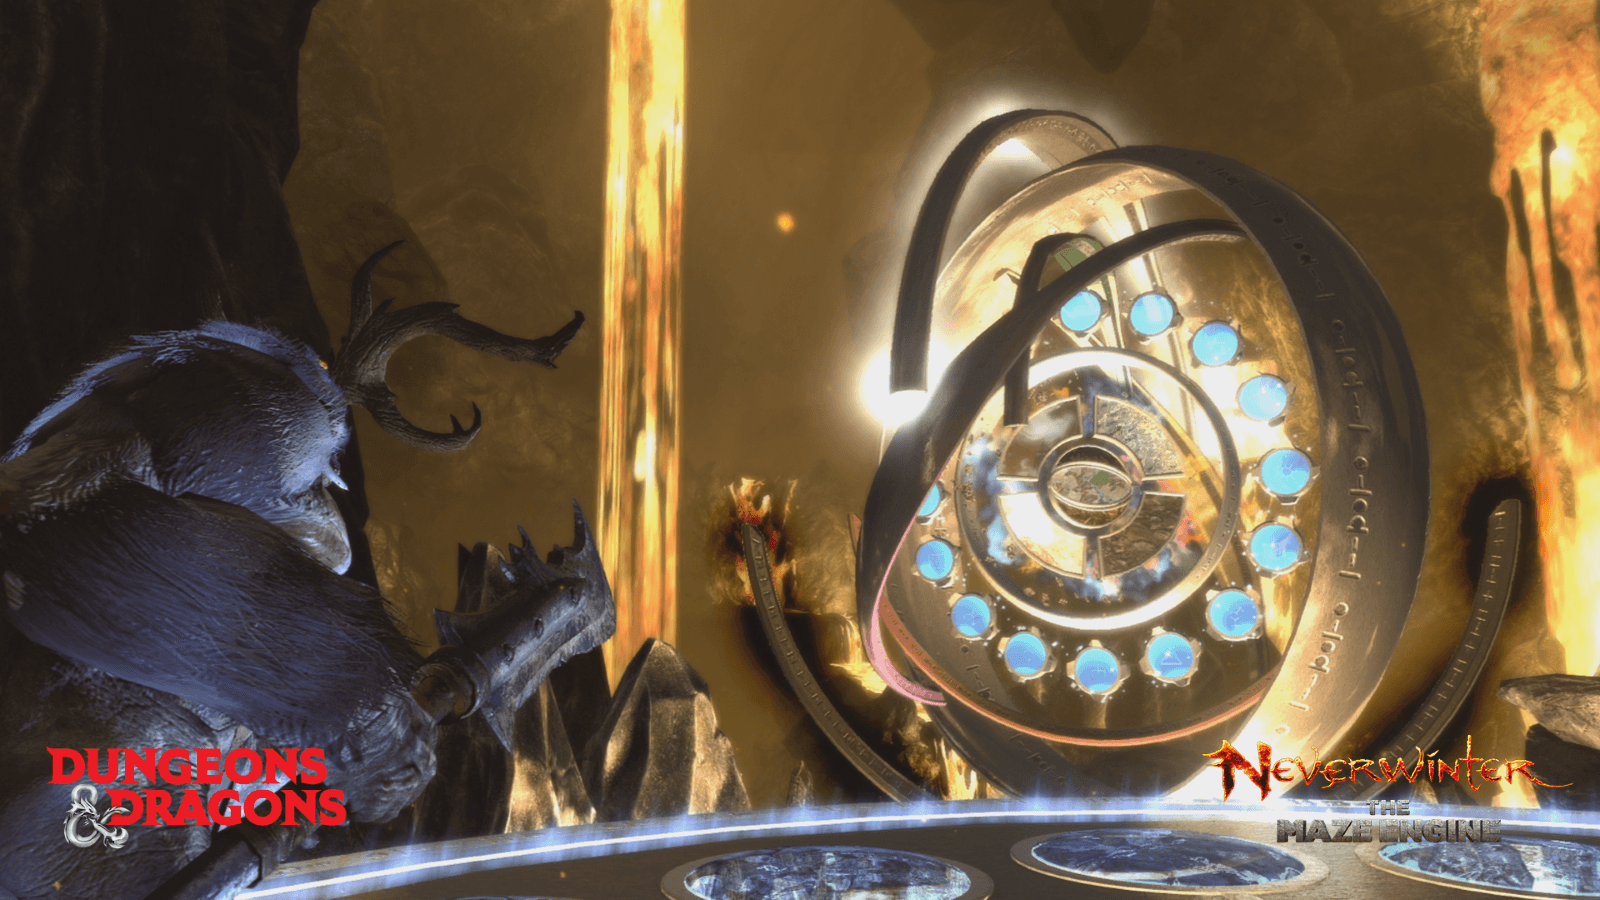 Neverwinter: The Maze Engine Launches on March 15 header